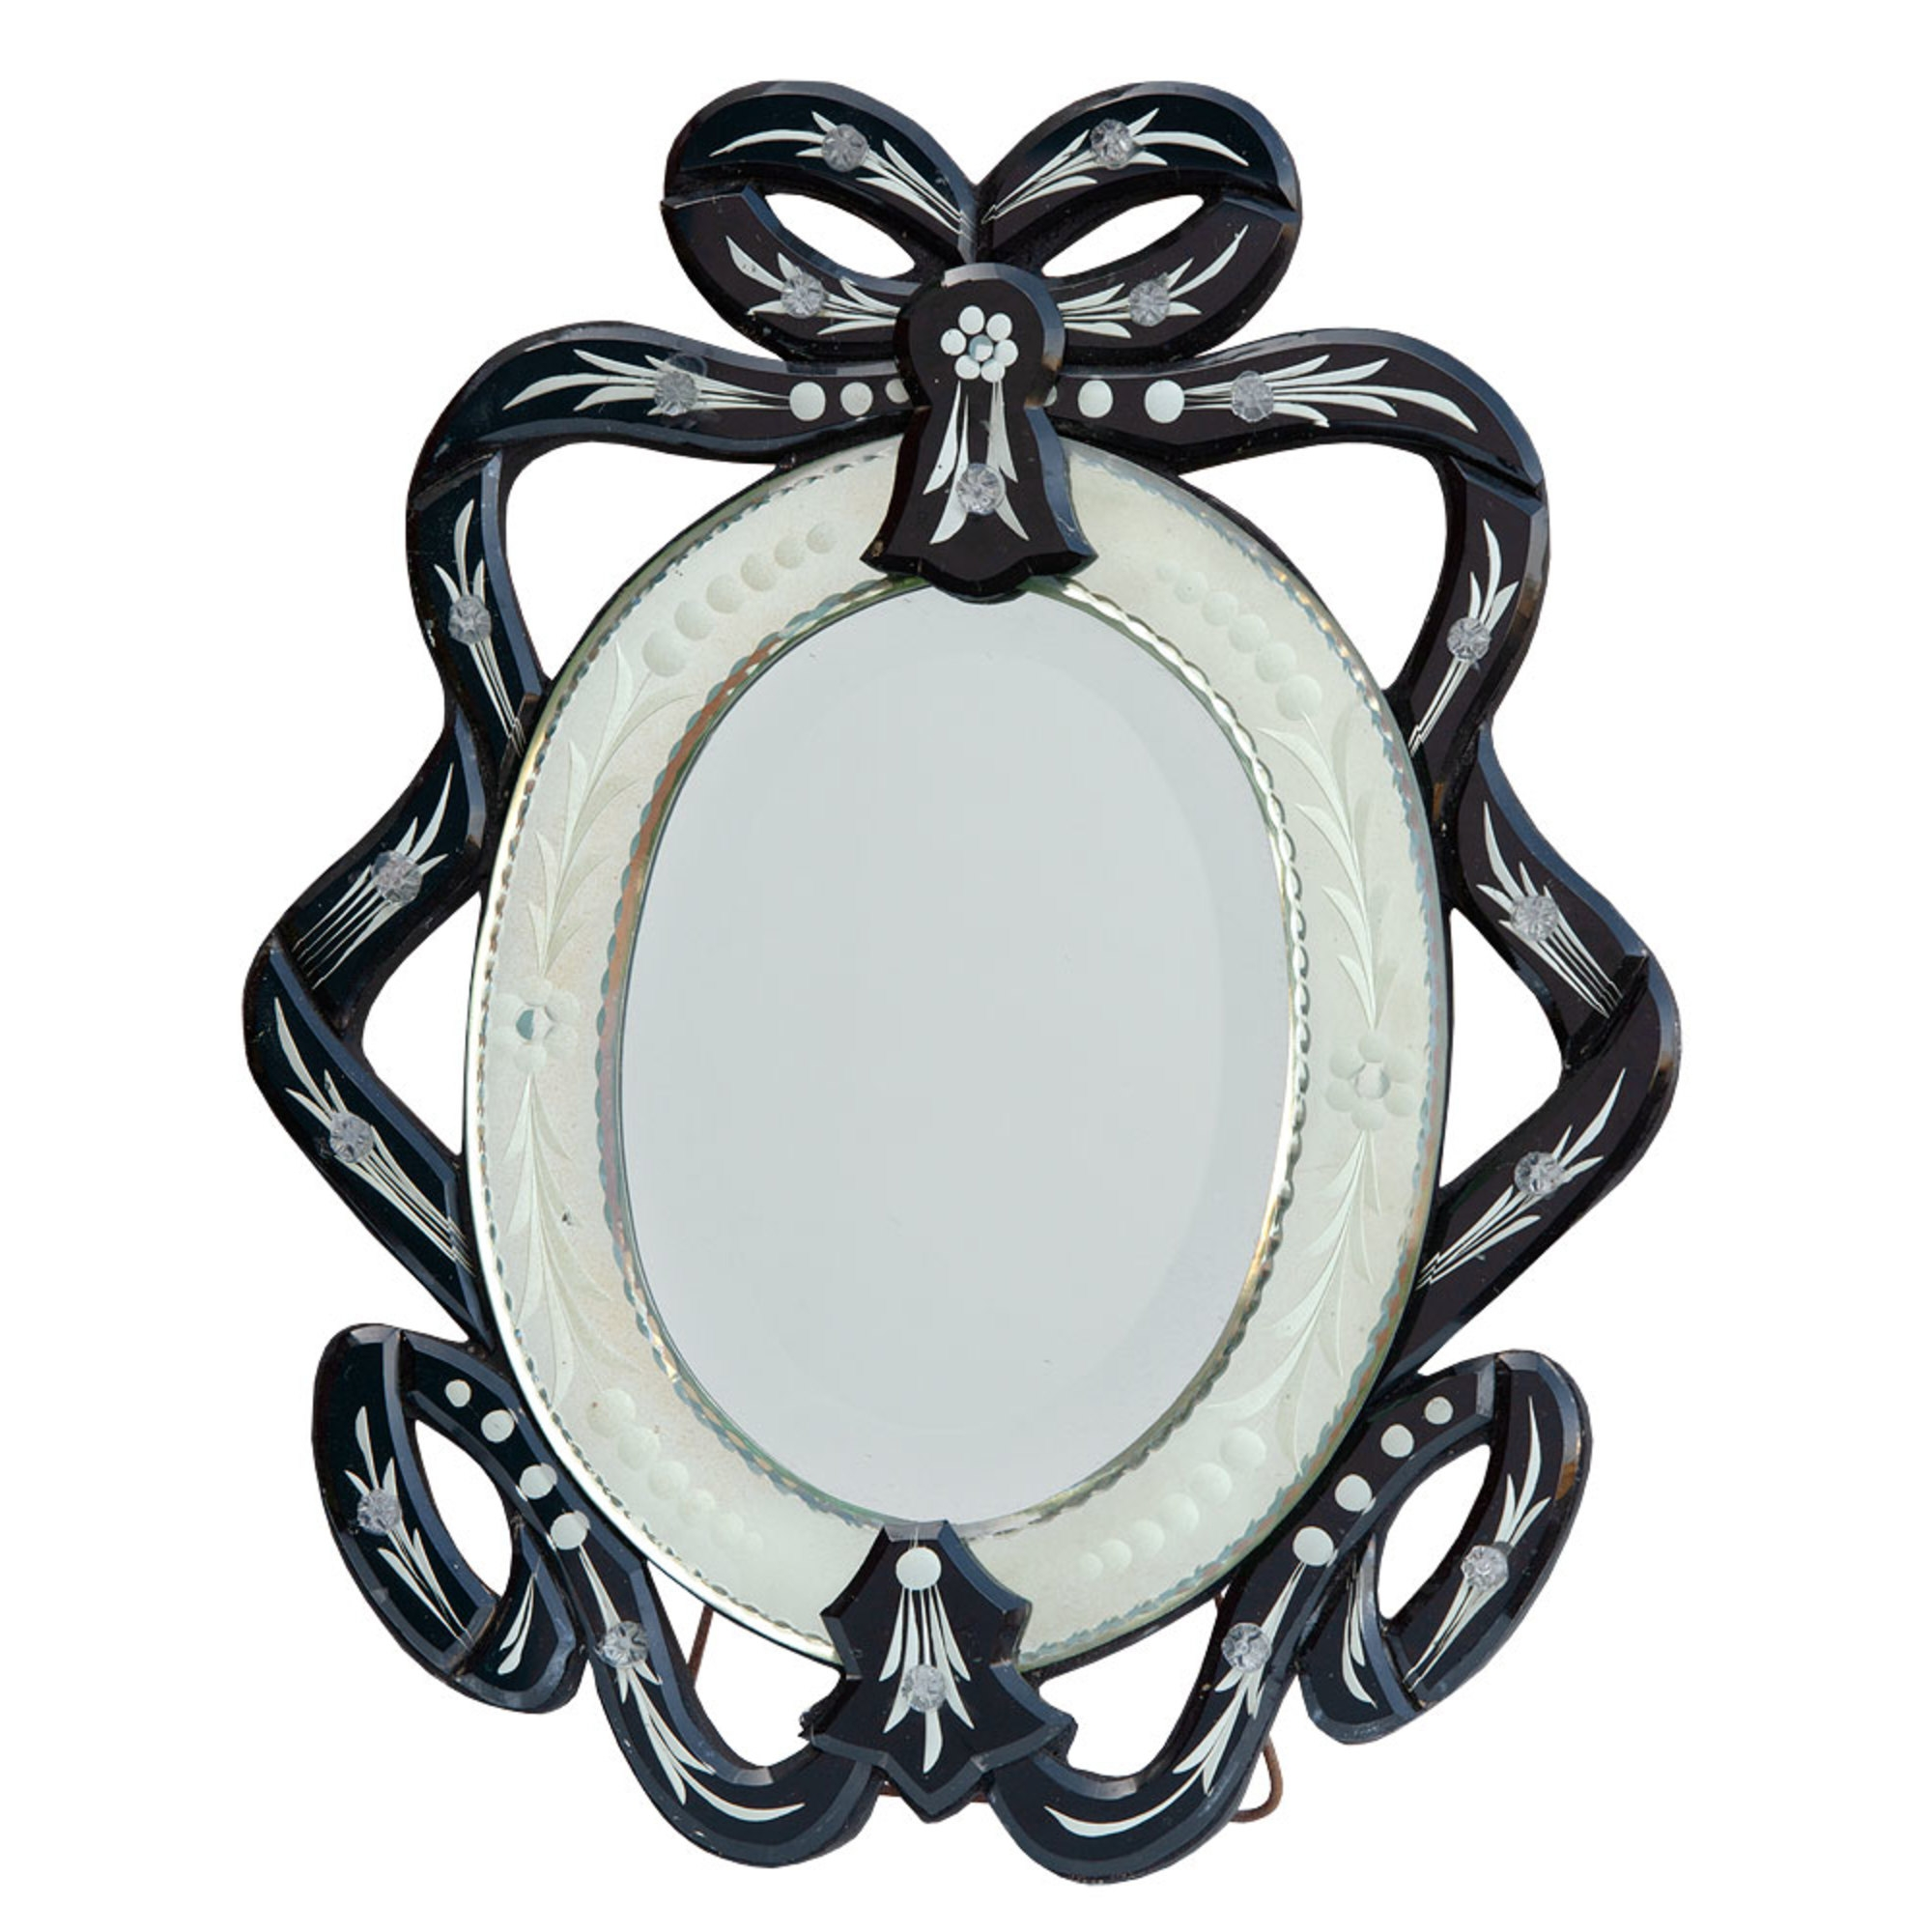 Venetian Ribbon Clear & Black Etched Oval Table or Wall Mirror